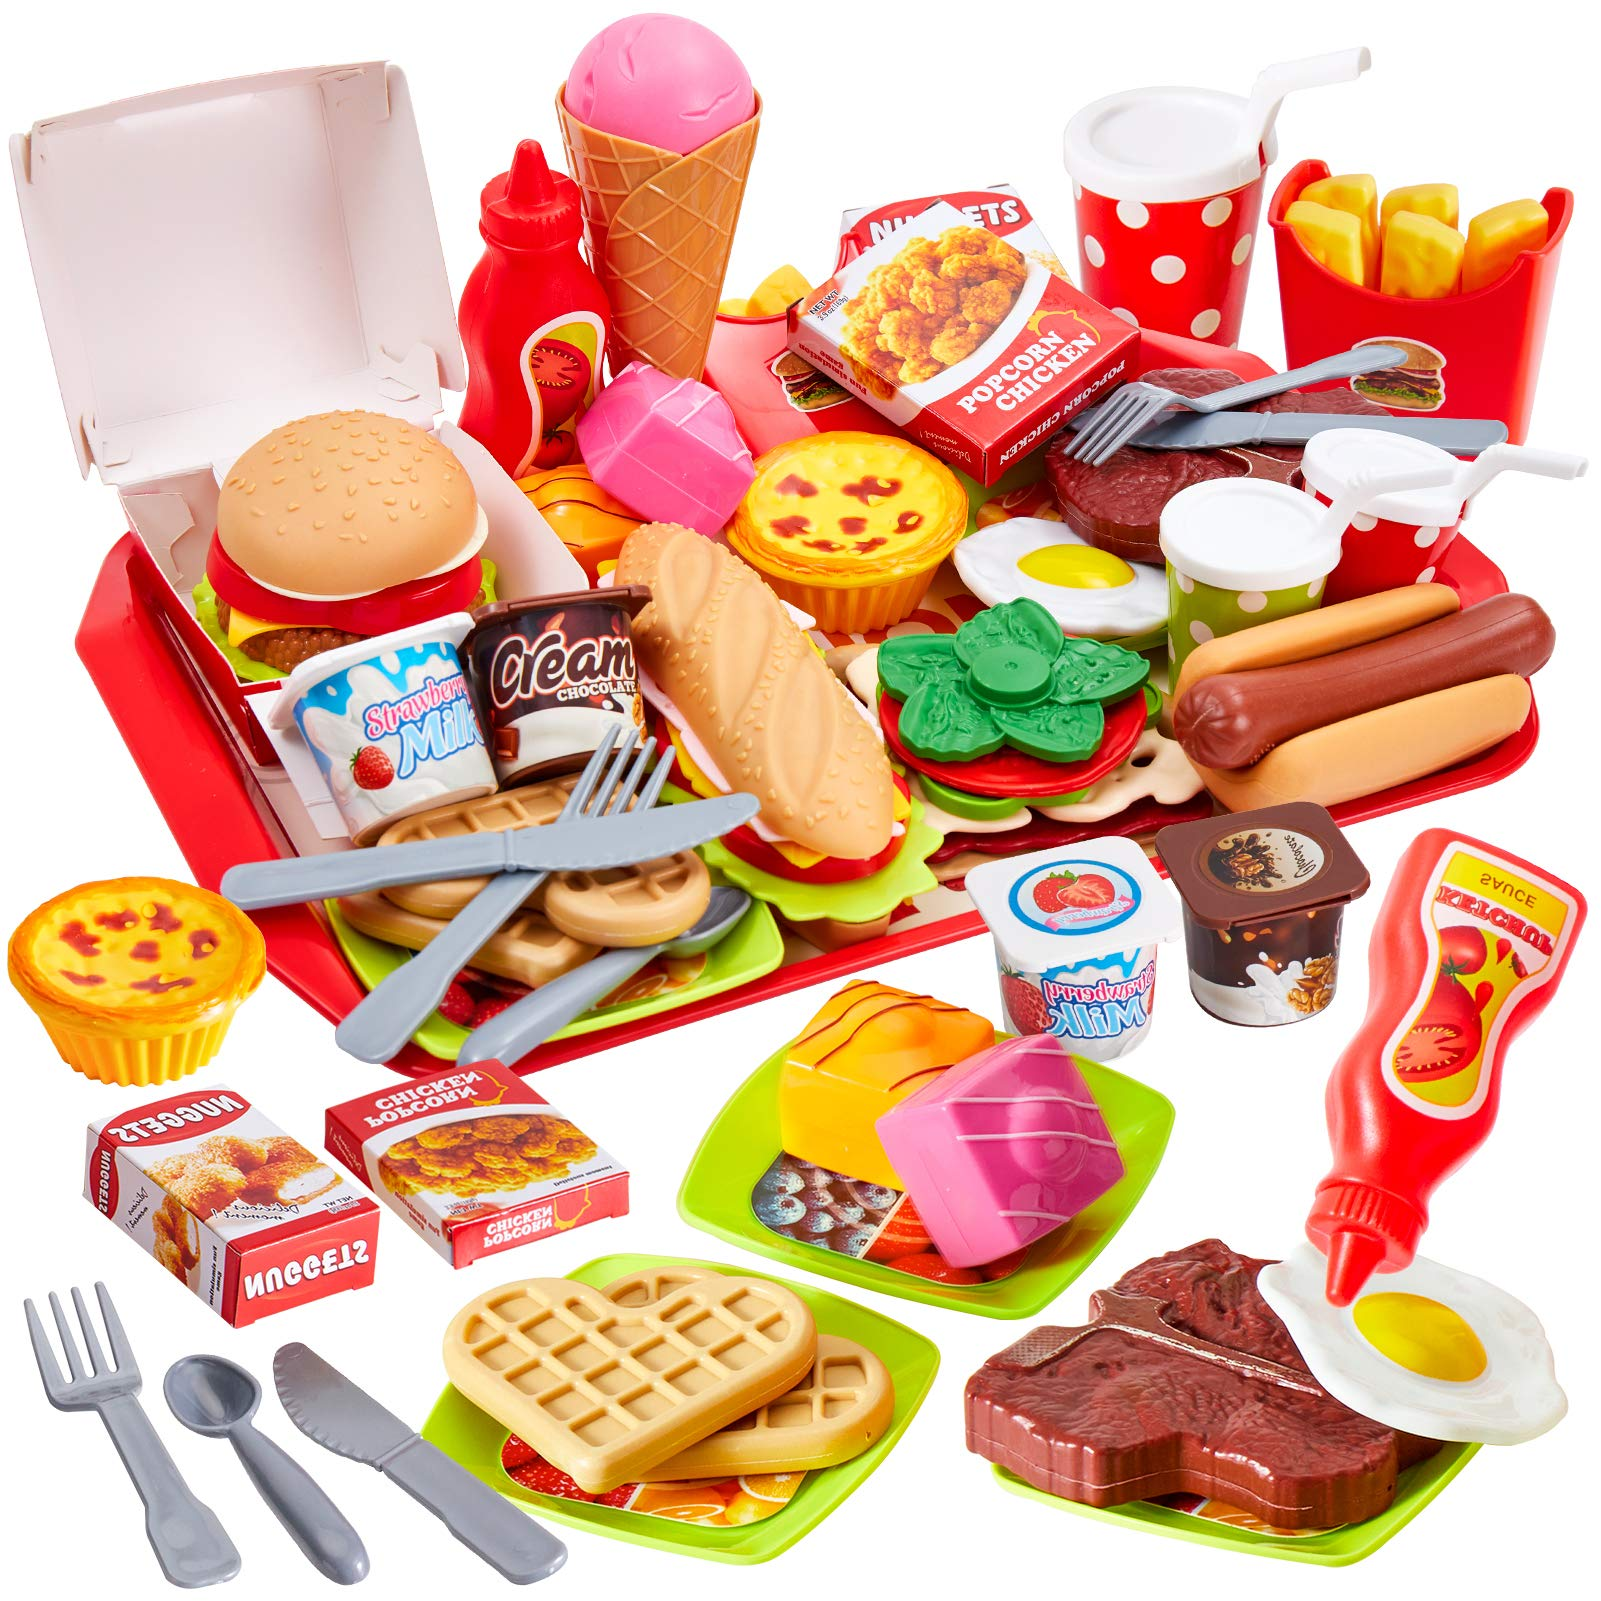 Buyger 63 PCS Fast Food Toy Play Food for Children Role Play Toy Kitchen Accessories Burger Set for 3 Year Old Girl Boy Kid Gift